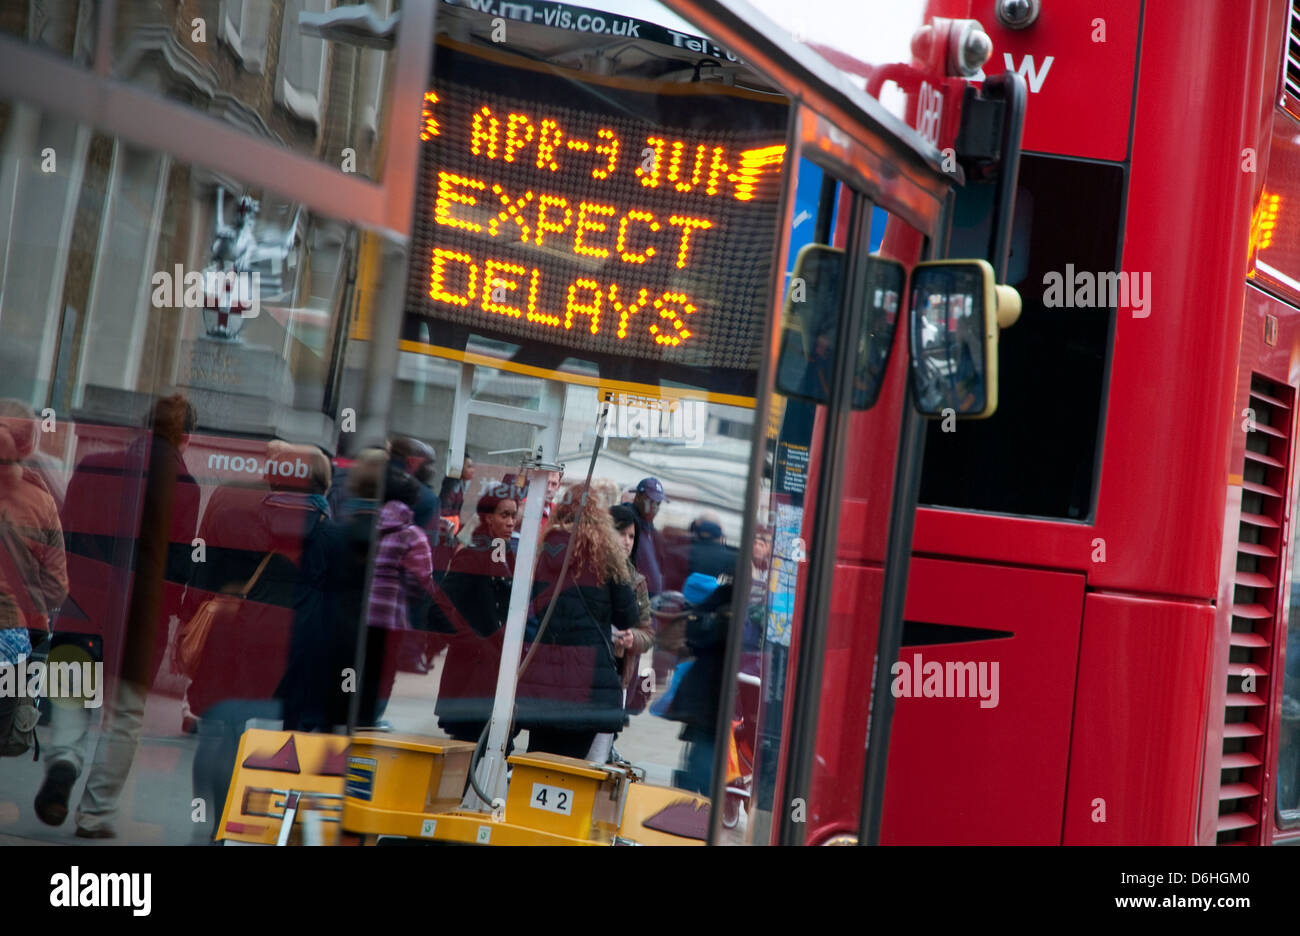 Expect Delays Sign Stock Photos & Expect Delays Sign Stock Images